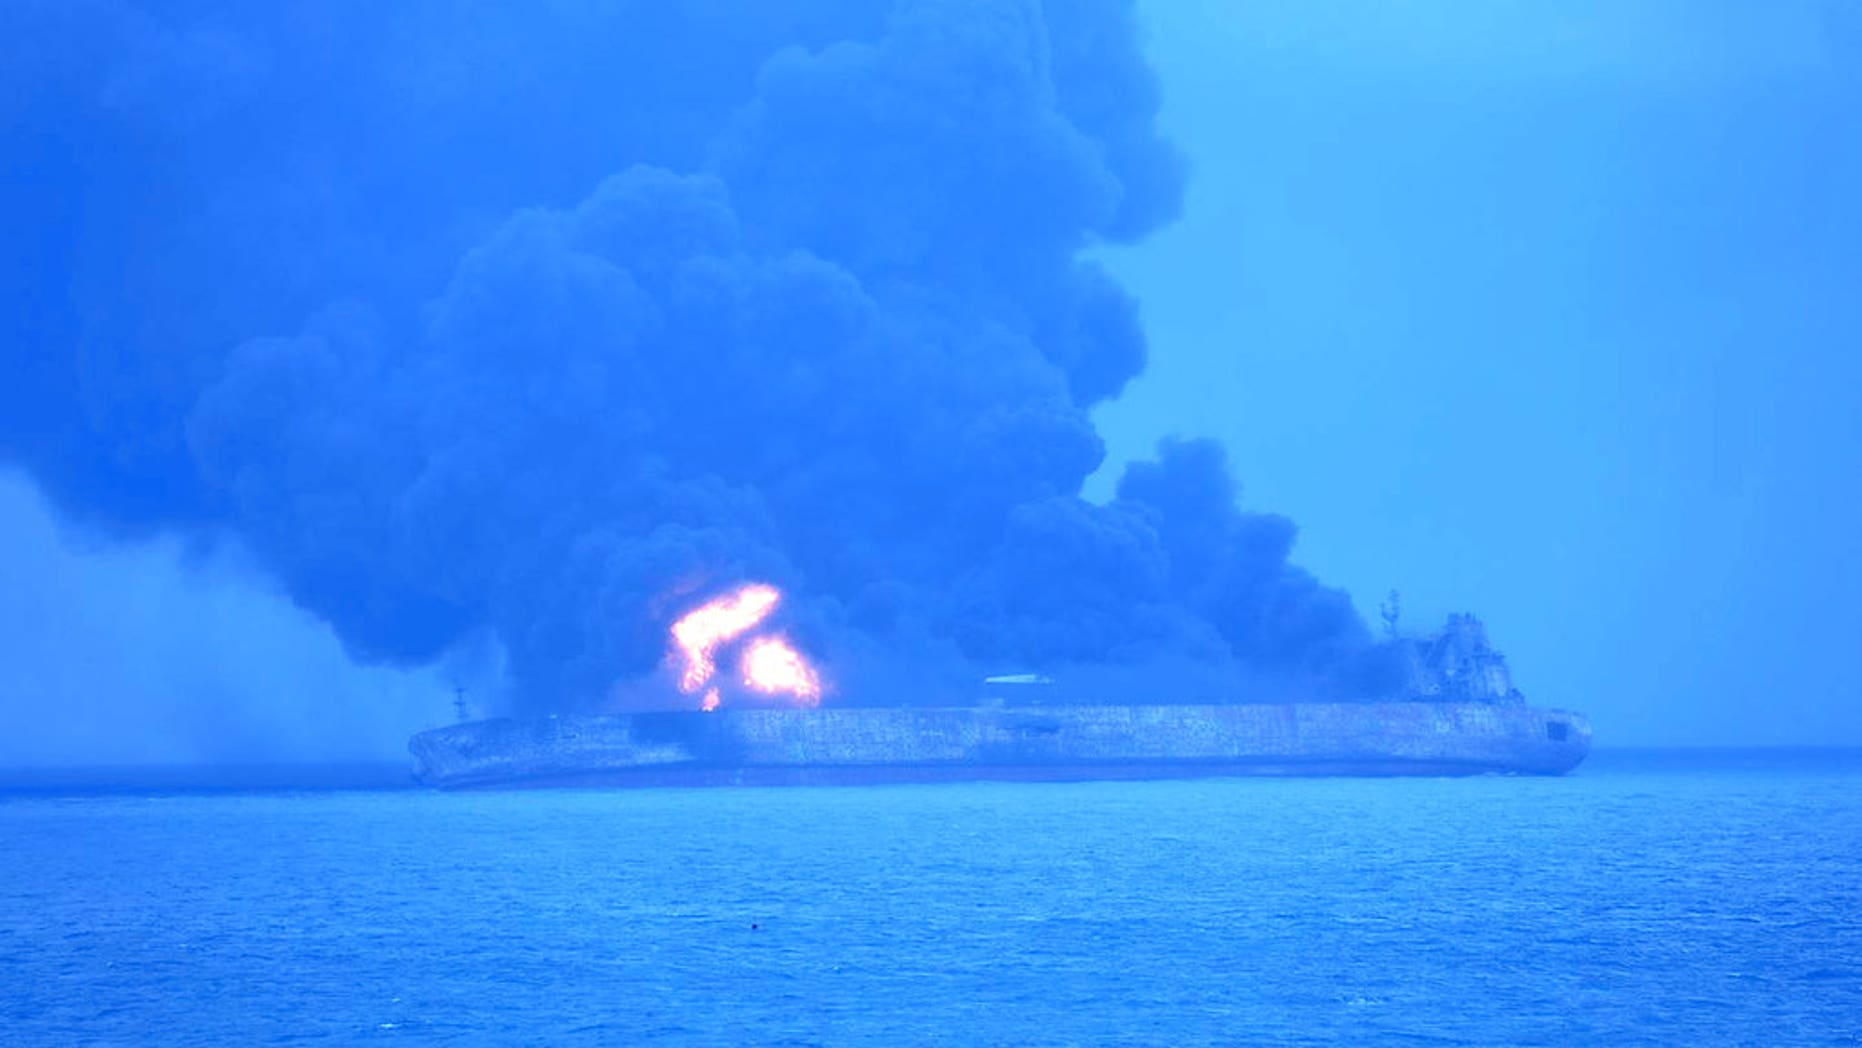 """Panama-registered tanker """"Sanchi"""" went ablaze after it collided with a freighter off China's eastern coast late Saturday."""